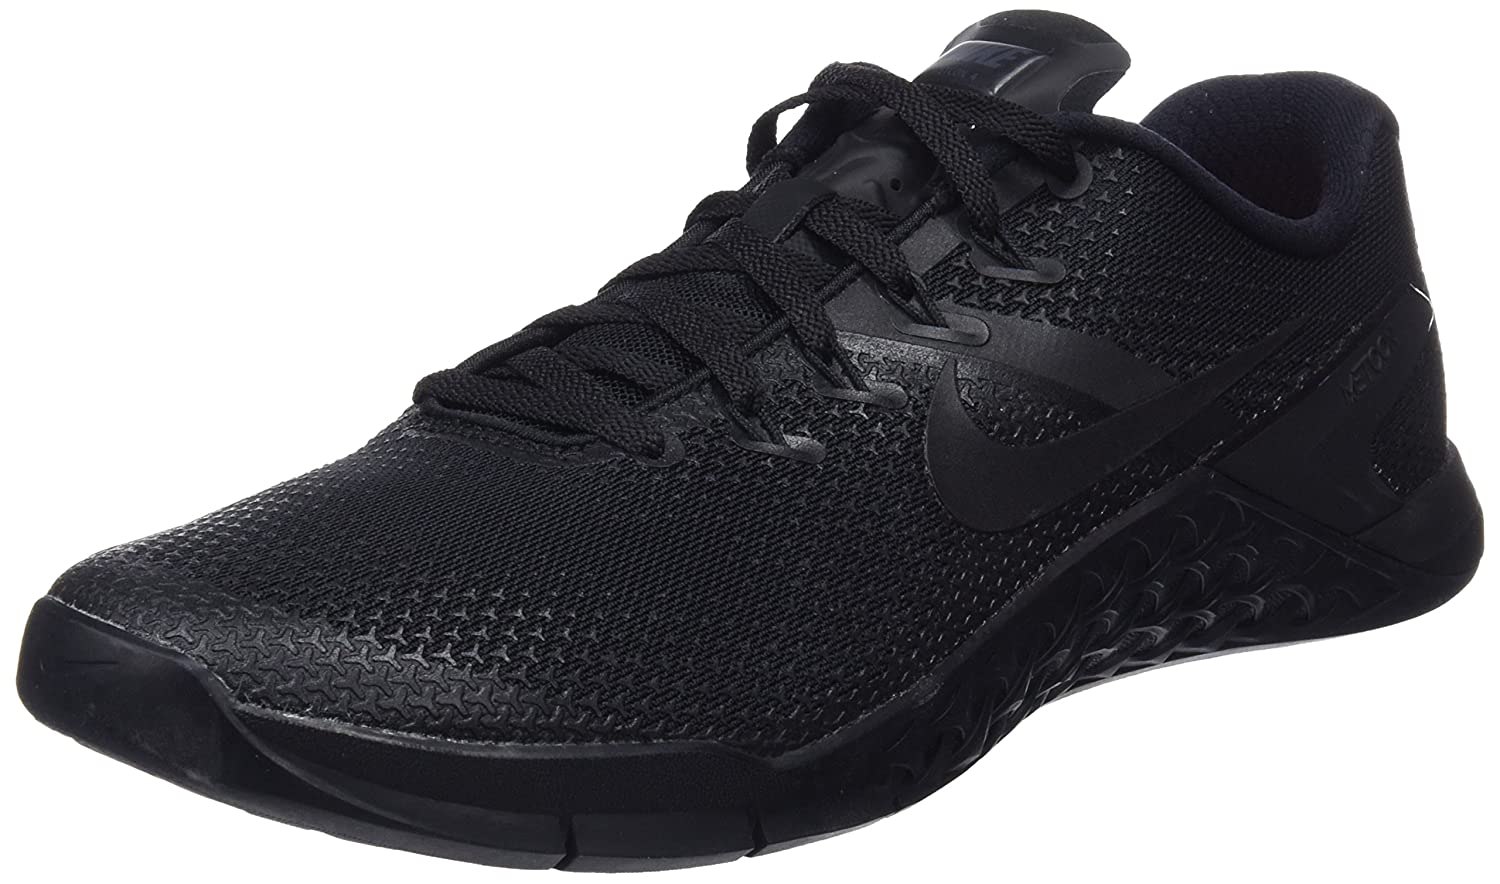 756c59d37 Amazon.com | Nike Metcon 4 Mens Cross Training Shoes | Fitness & Cross- Training